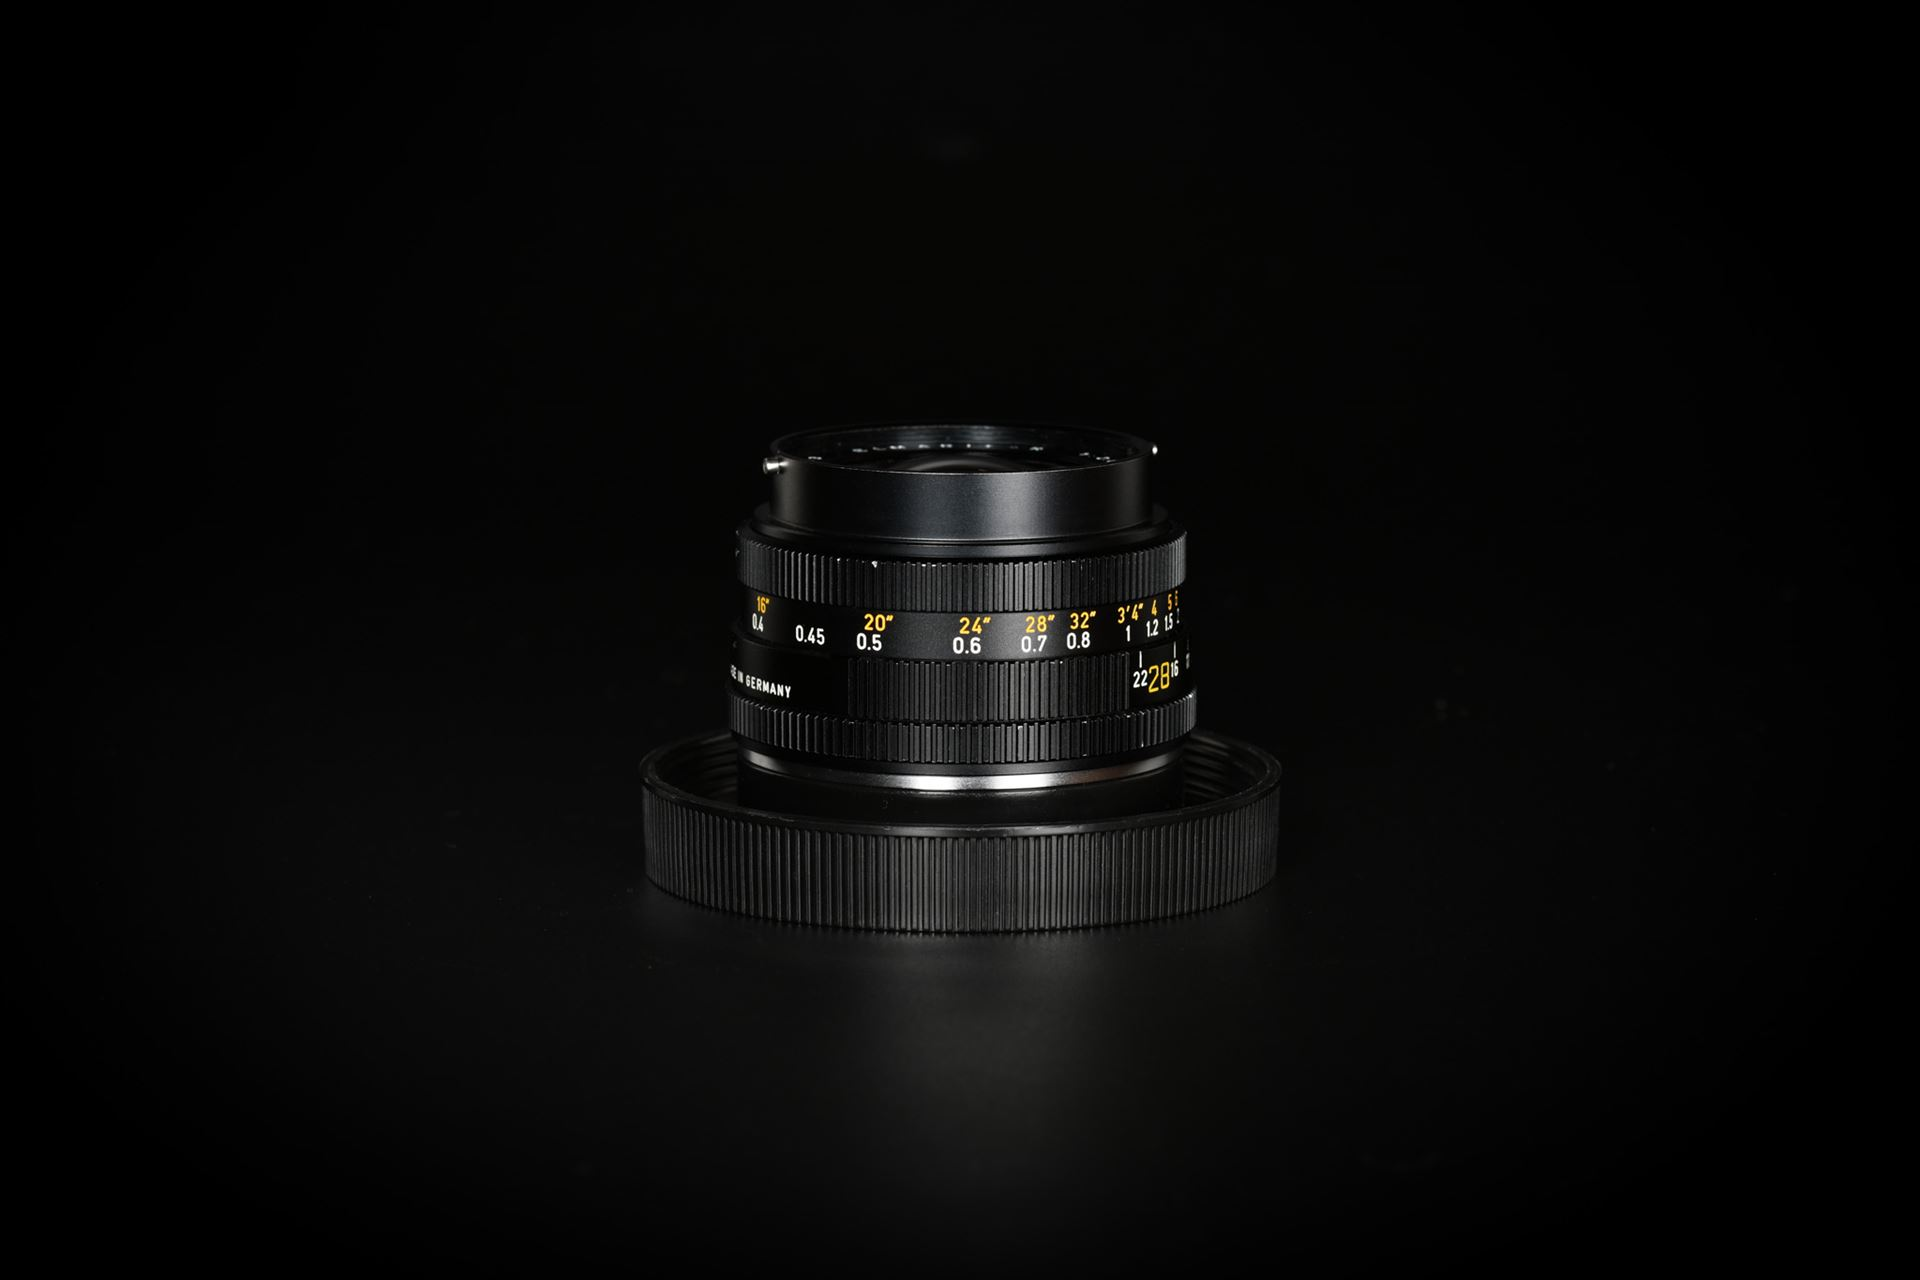 Picture of Leica Elmarit-R 28mm f/2.8 Ver.1 Prototype 3-CAM